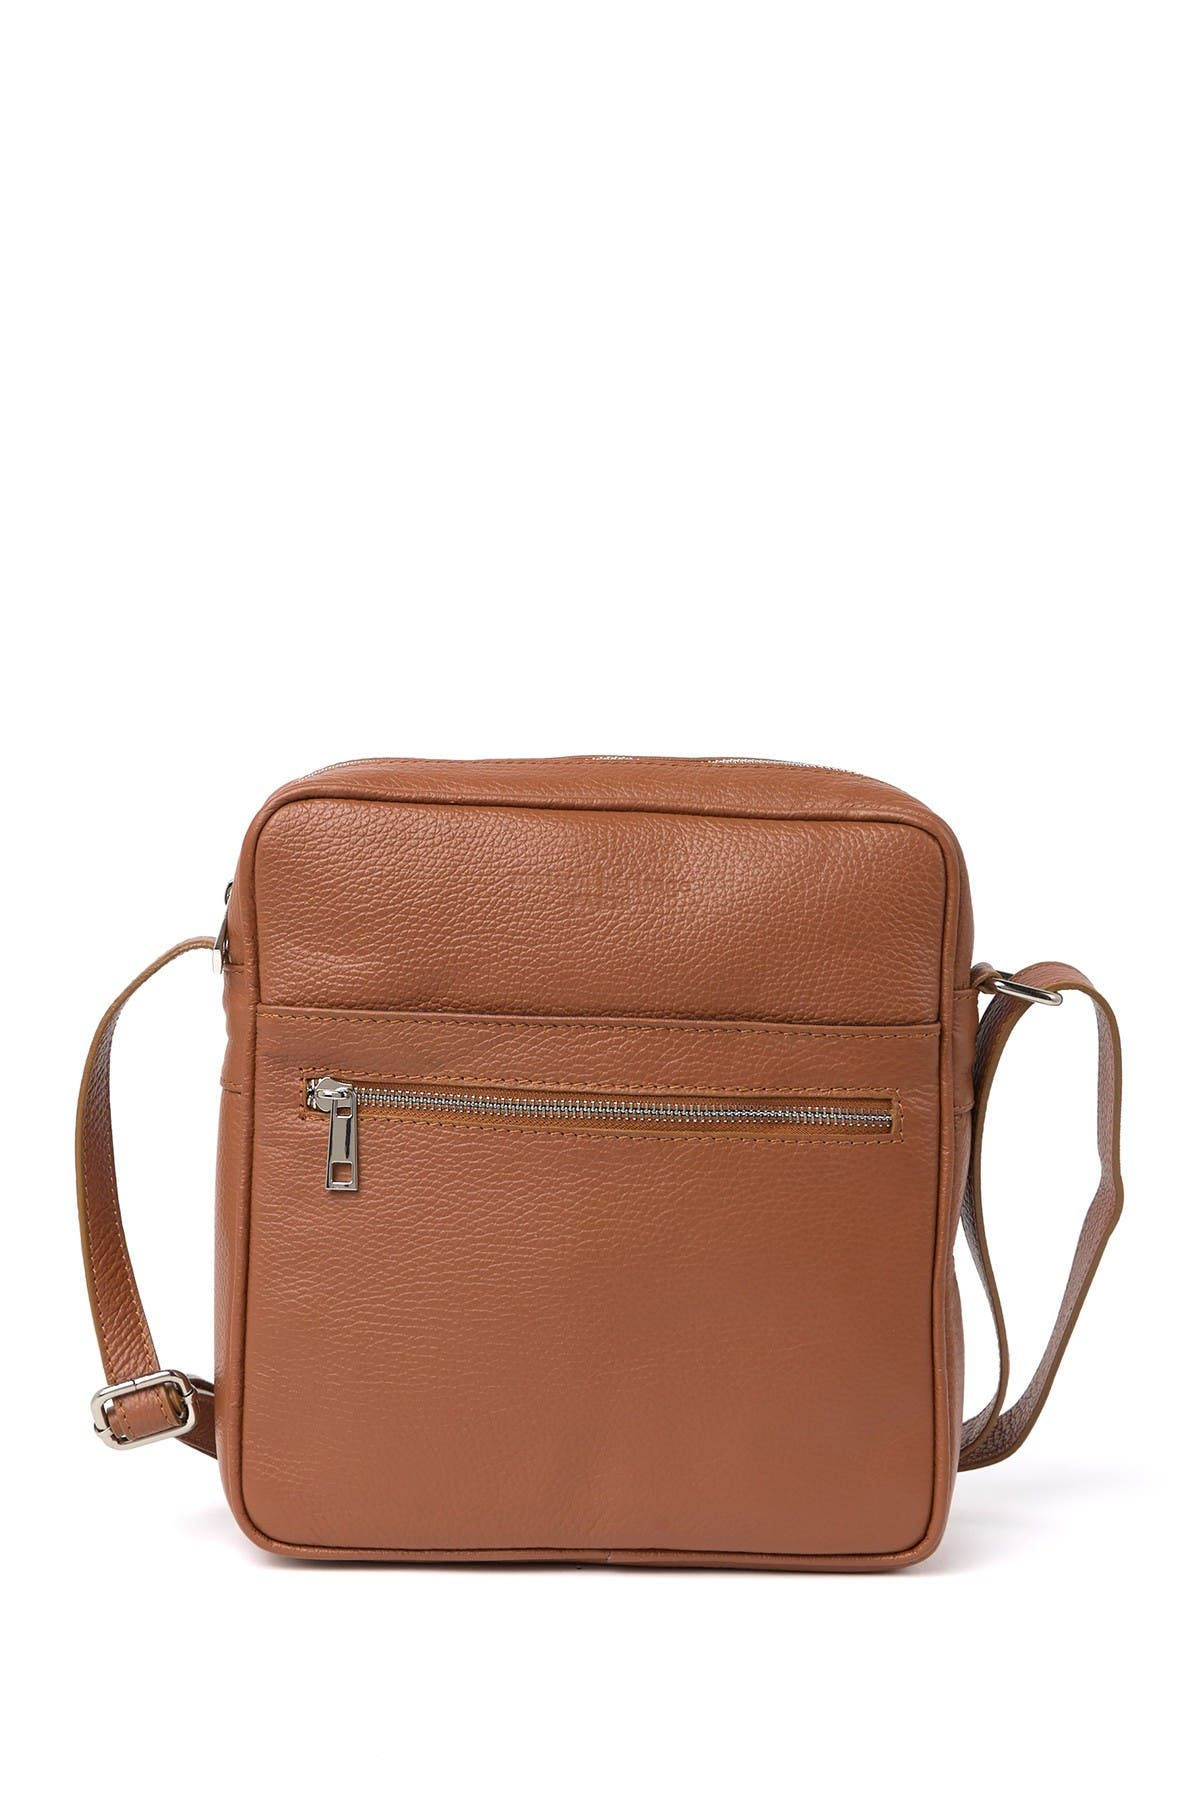 Image of Maison Heritage Leather Crossbody Bag